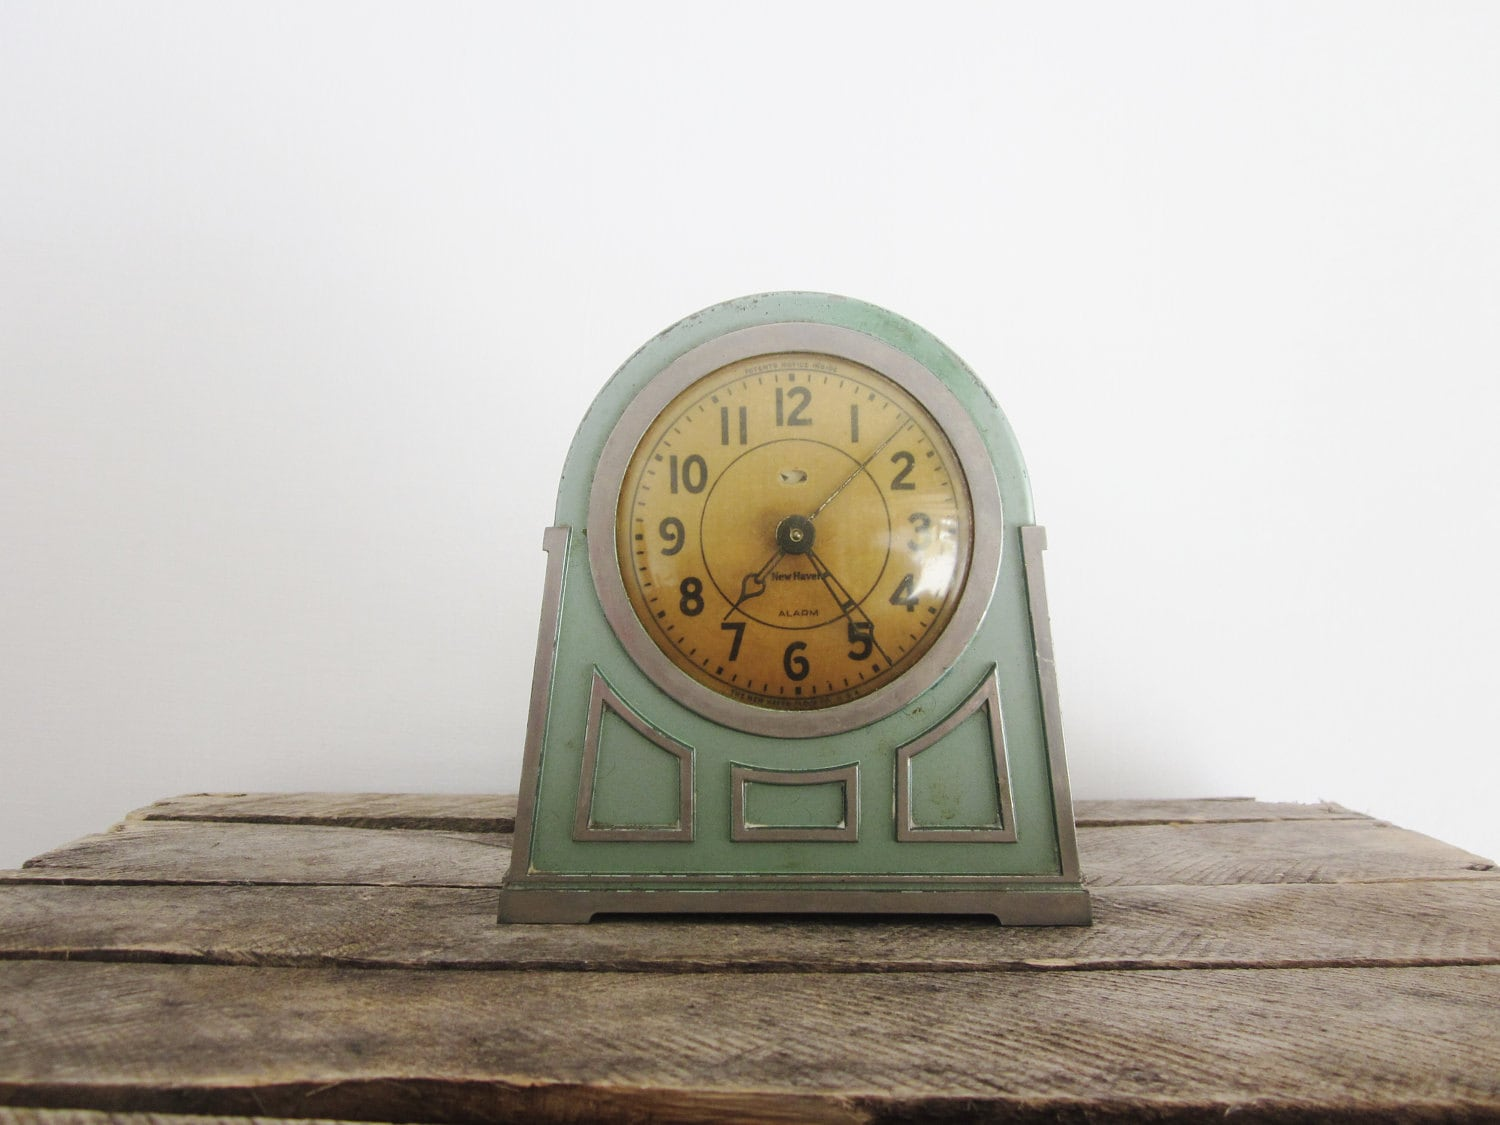 Vintage art deco alarm clock mint green bubble glass face art Art deco alarm clocks